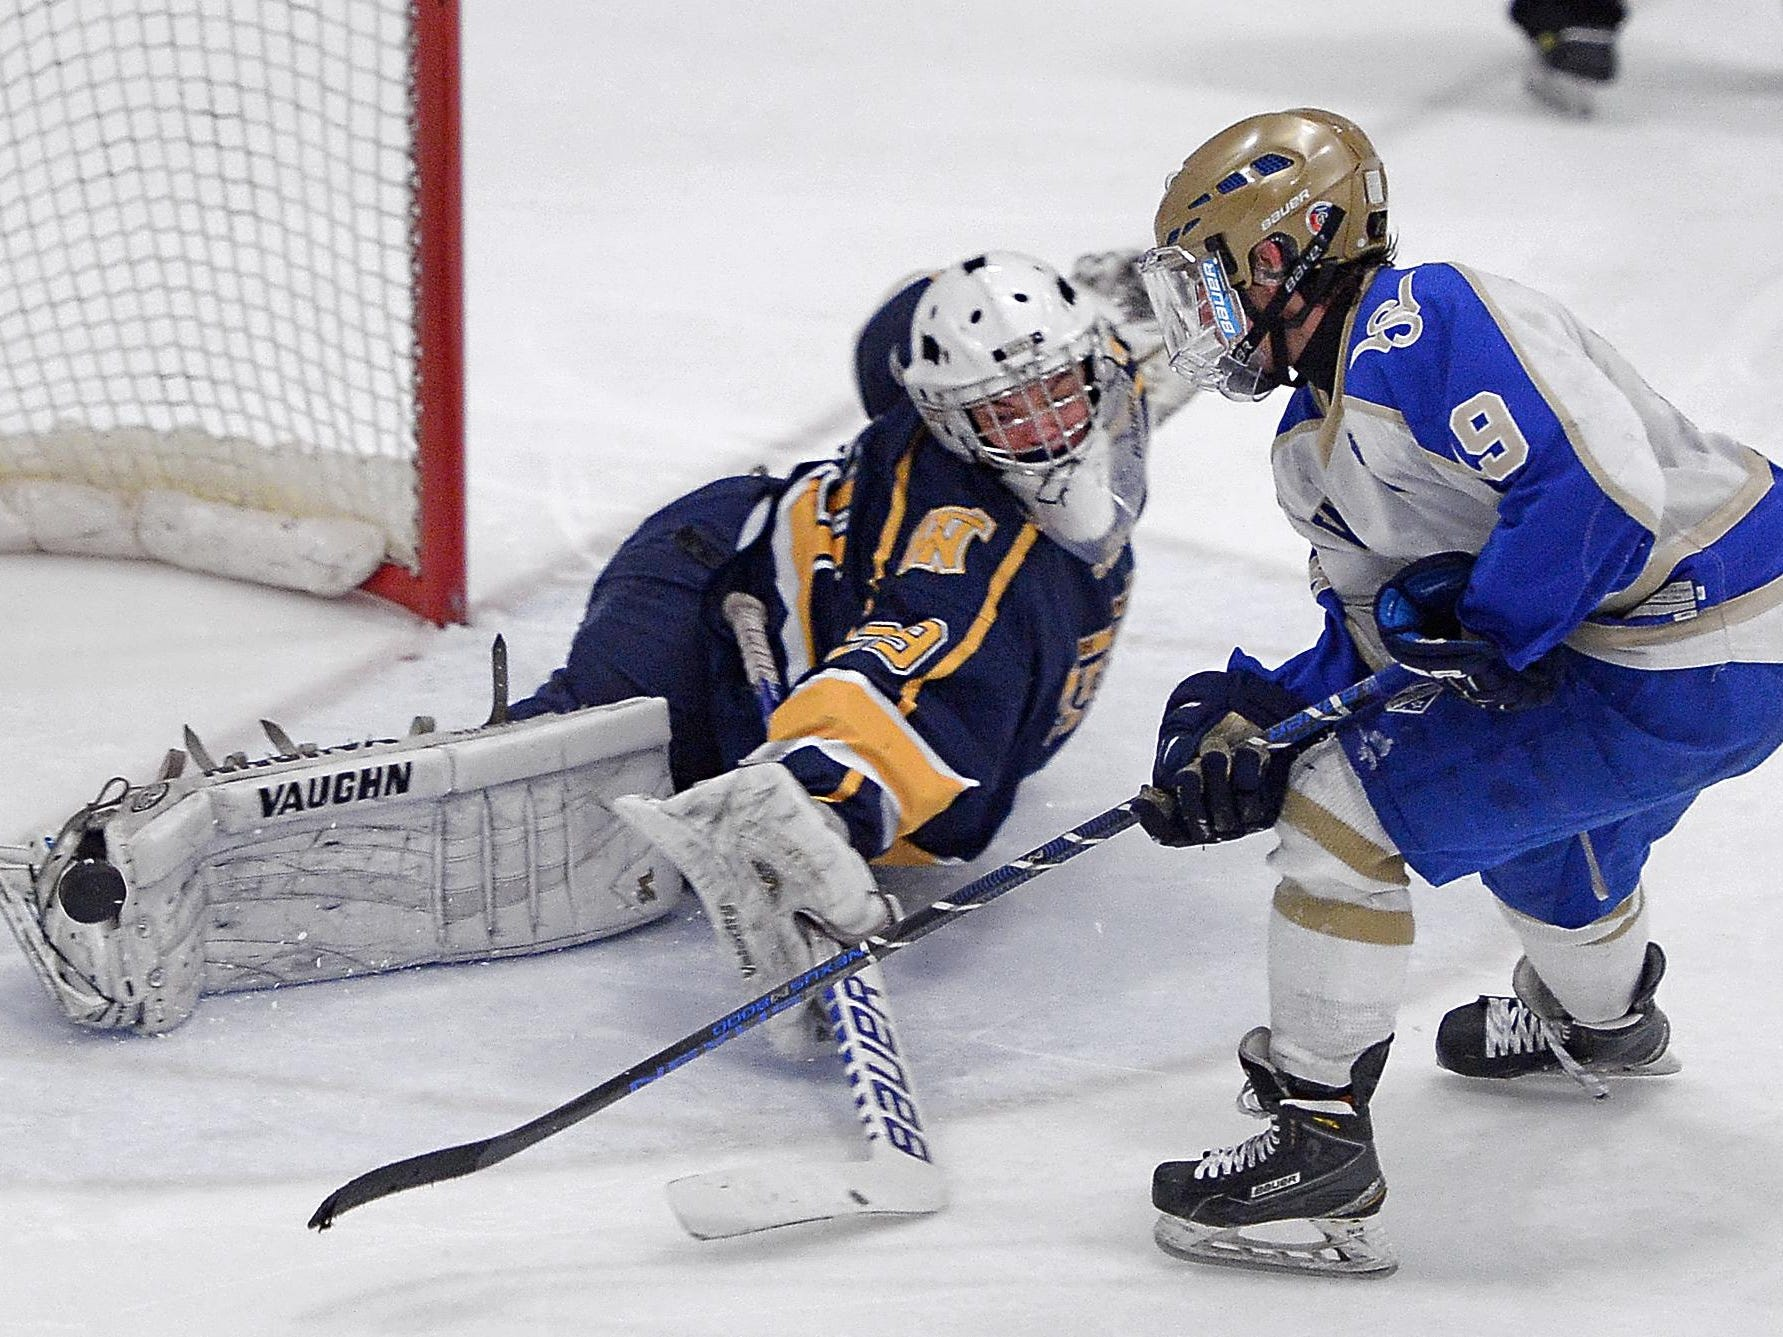 Webster Thomas goalie Dalton Jerzak, left, stops a penalty shot by Webster Schroeder's Matt Montgomery in the third period to preserve the 2-2 tie Webster Ice Arean as part of the Robert J. Smith Memorial High School Hockey Showcase on Saturday.